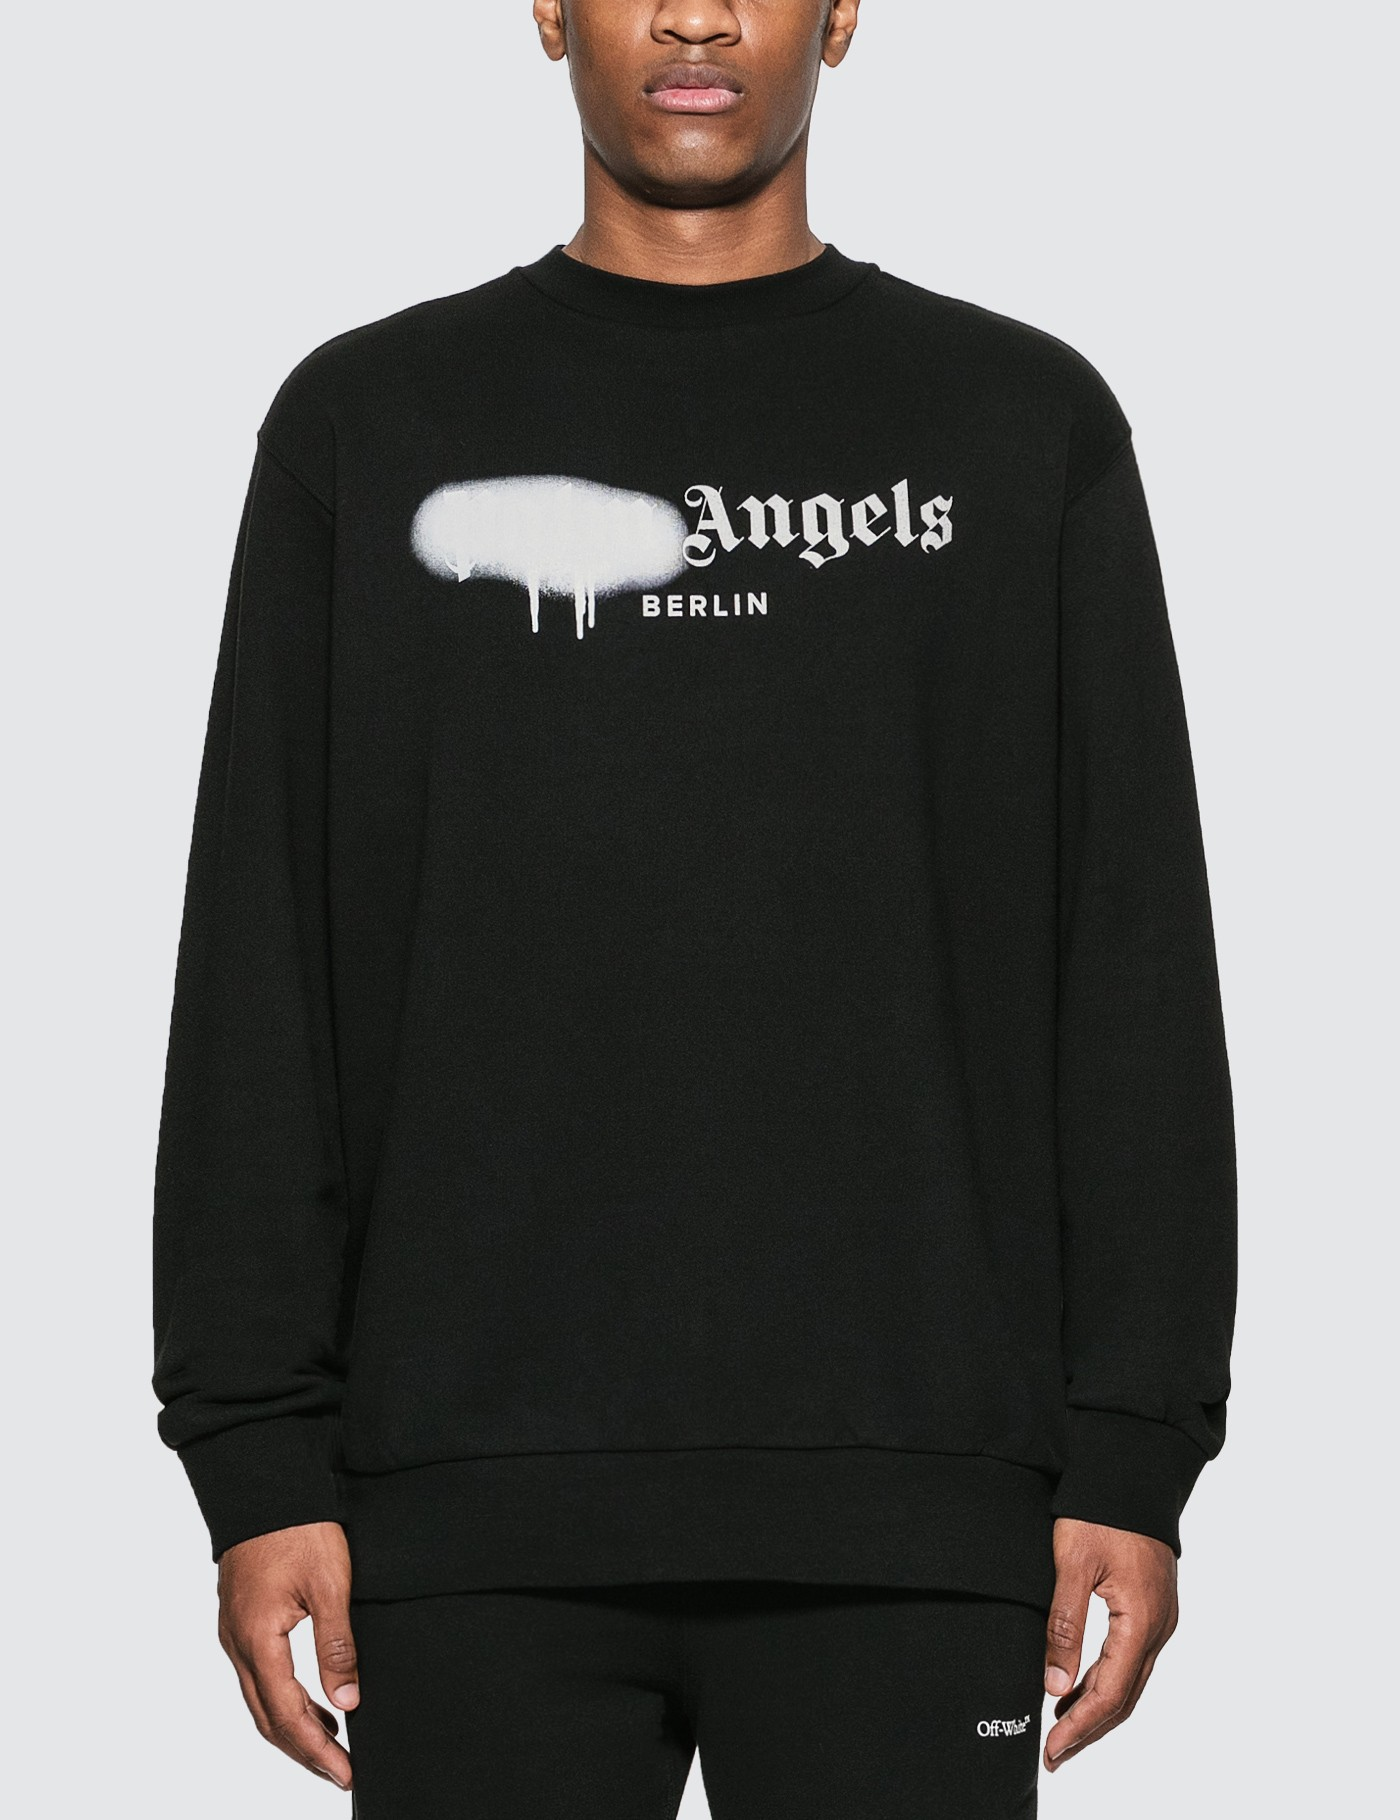 PALM ANGELS BERLIN SPRAYED LOGO SWEATSHIRT